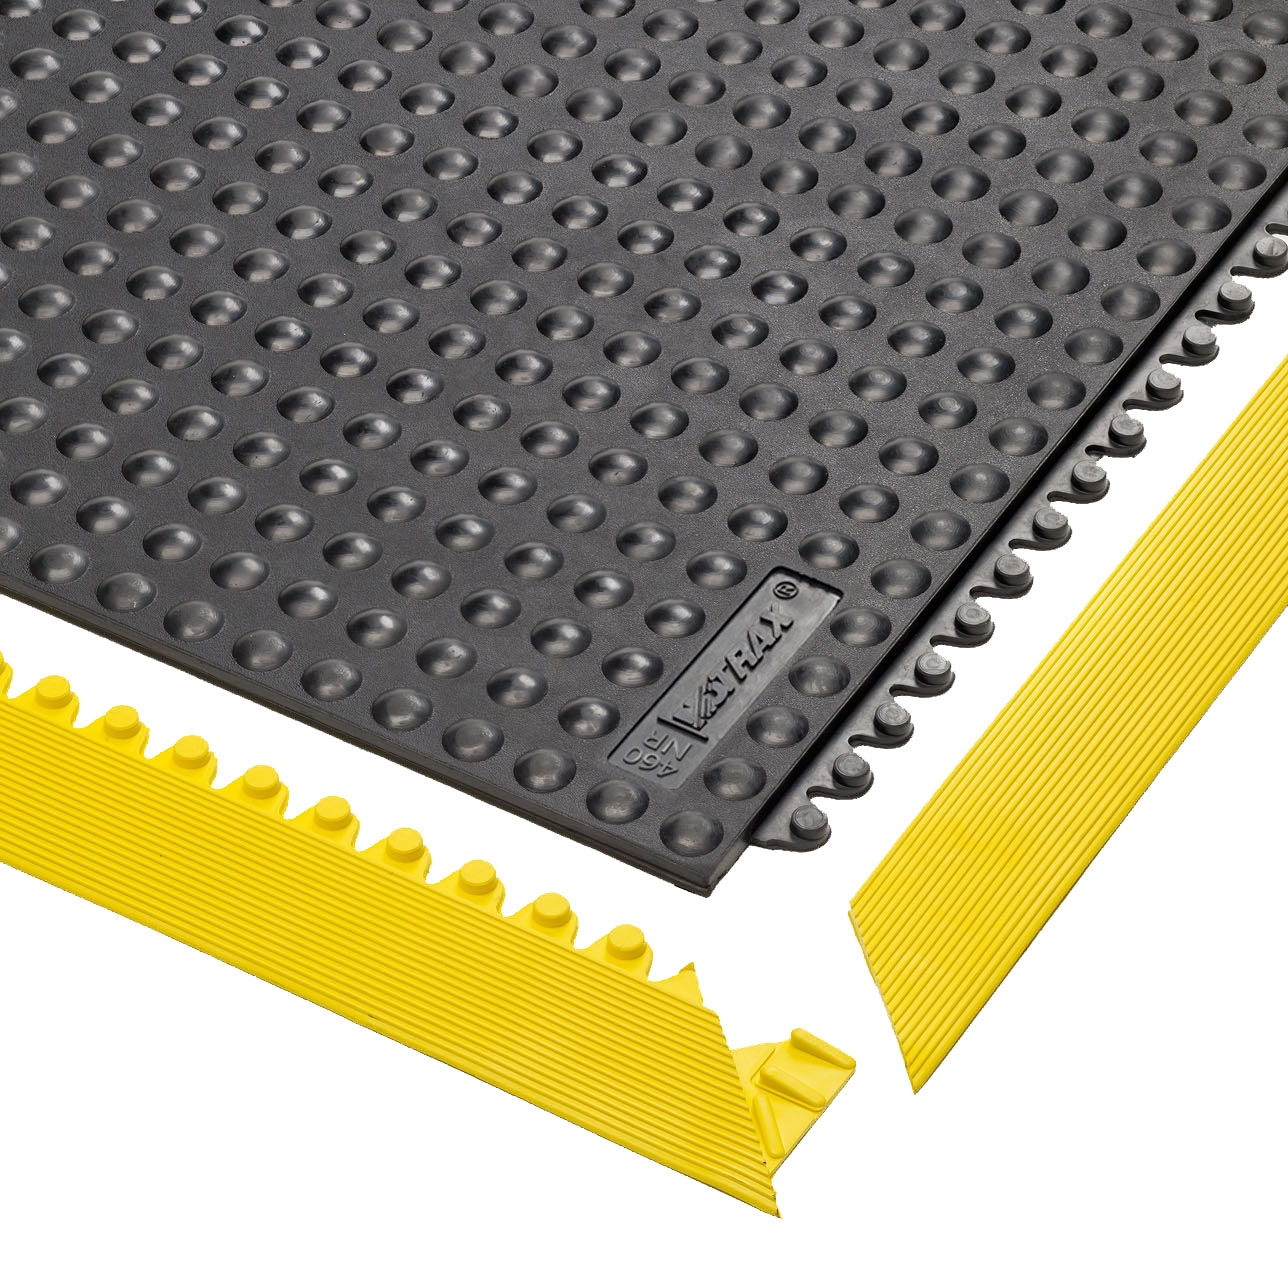 Skywalker HD™ Matting and Safety Lines